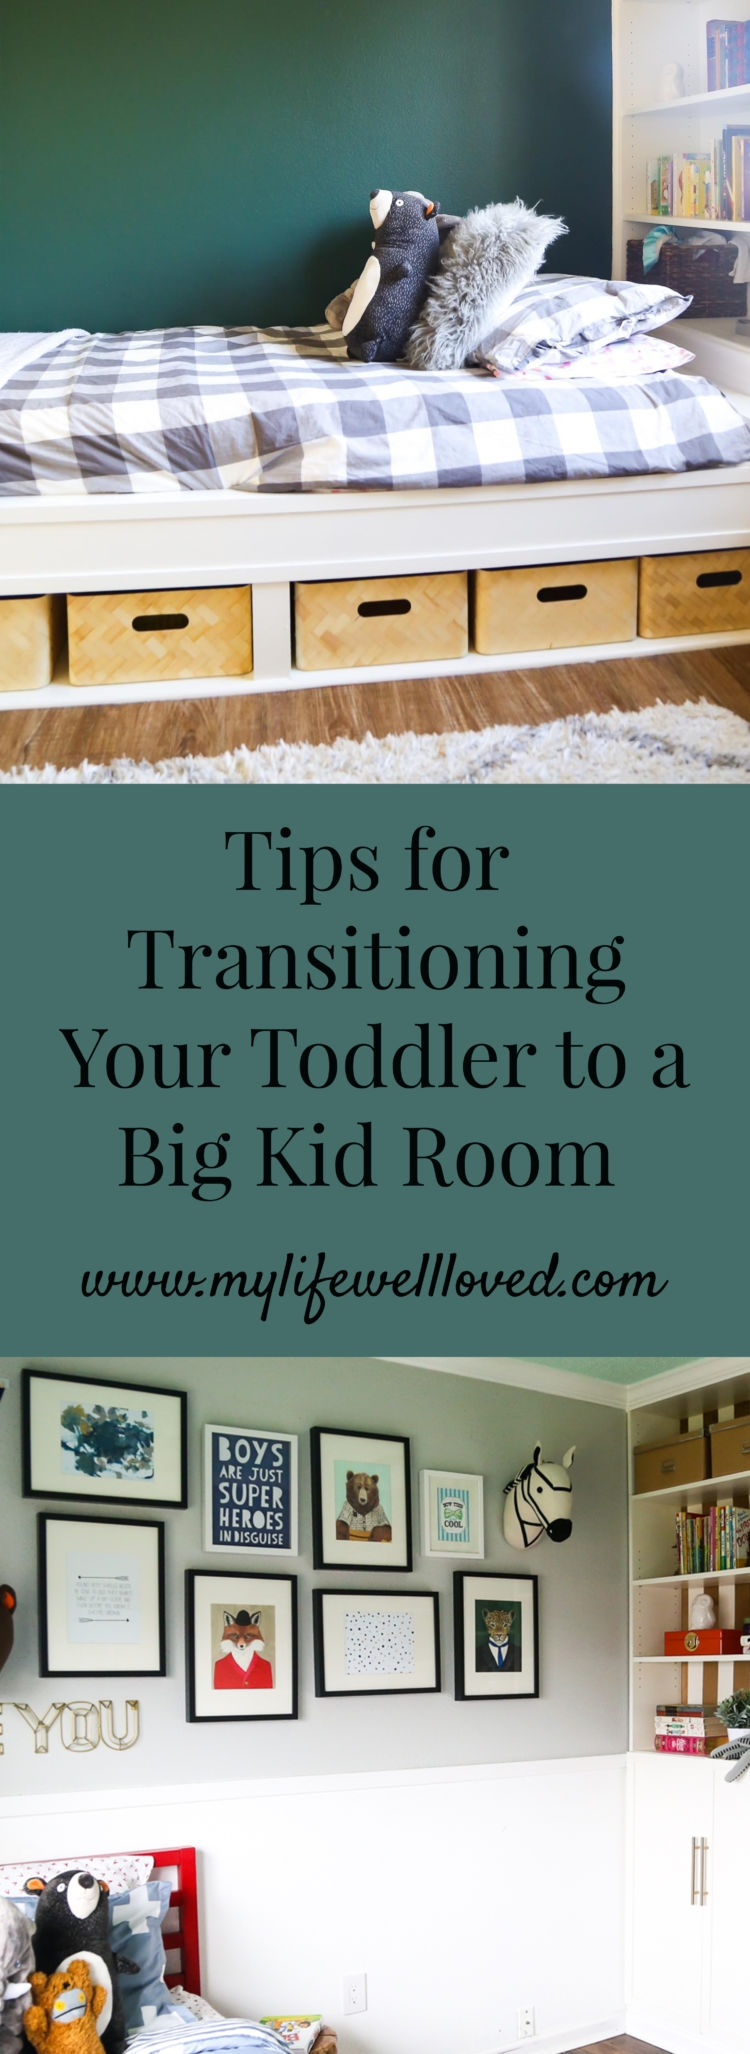 5 Essential Tips for Transitioning Your Toddler to a Big Boy Room by AL Life + Style Blogger, Heather, at MyLifeWellLoved.com // #bigkidroom #toddlerbed #homedecor